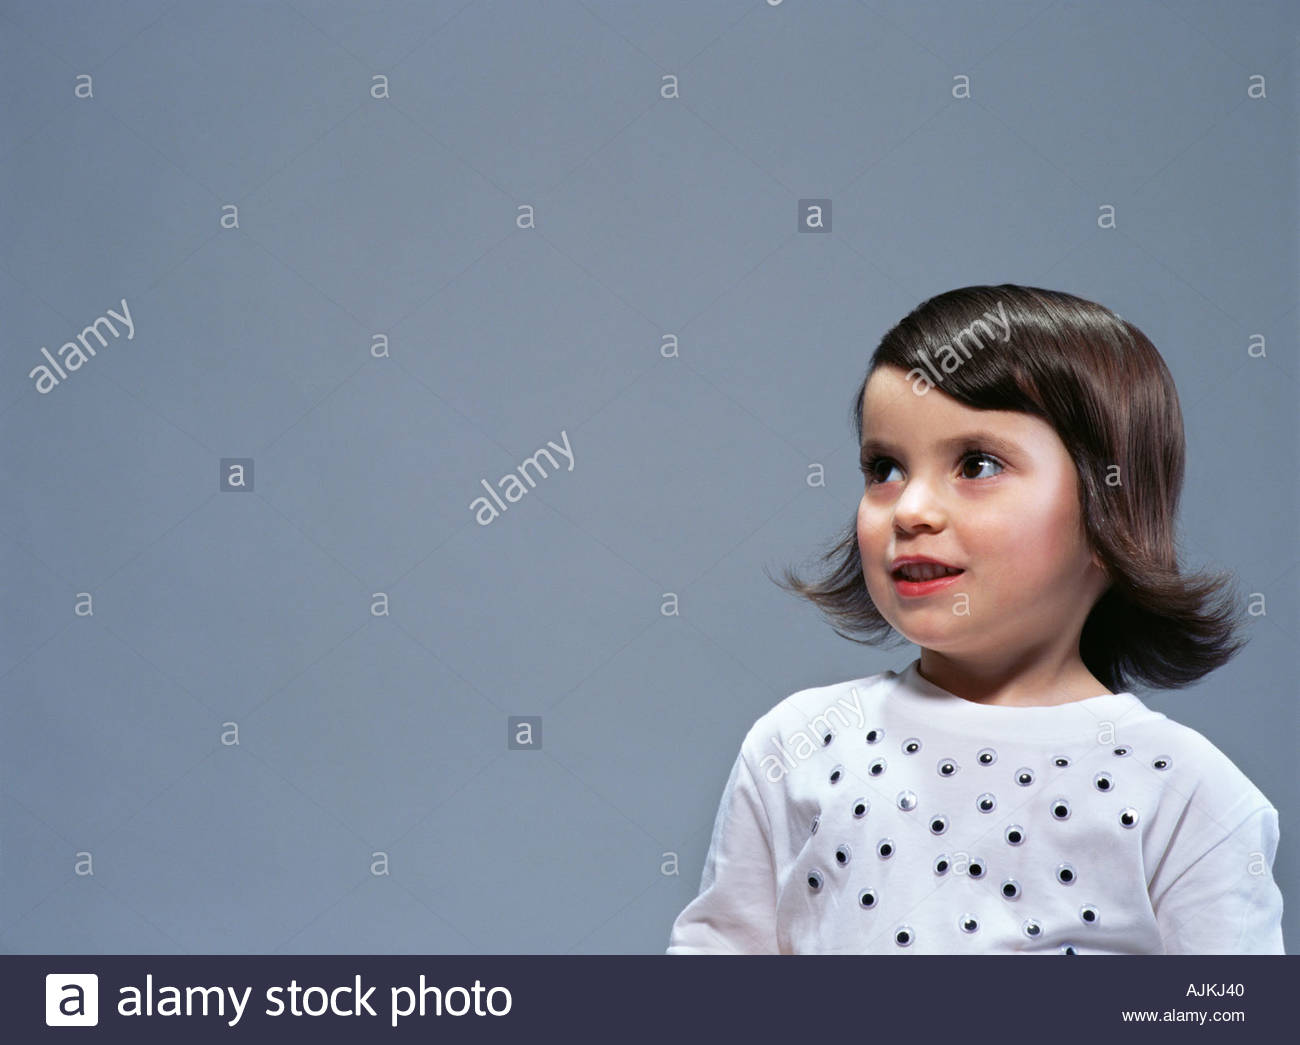 Girl with plastic eyes on her t-shirt - Stock Image